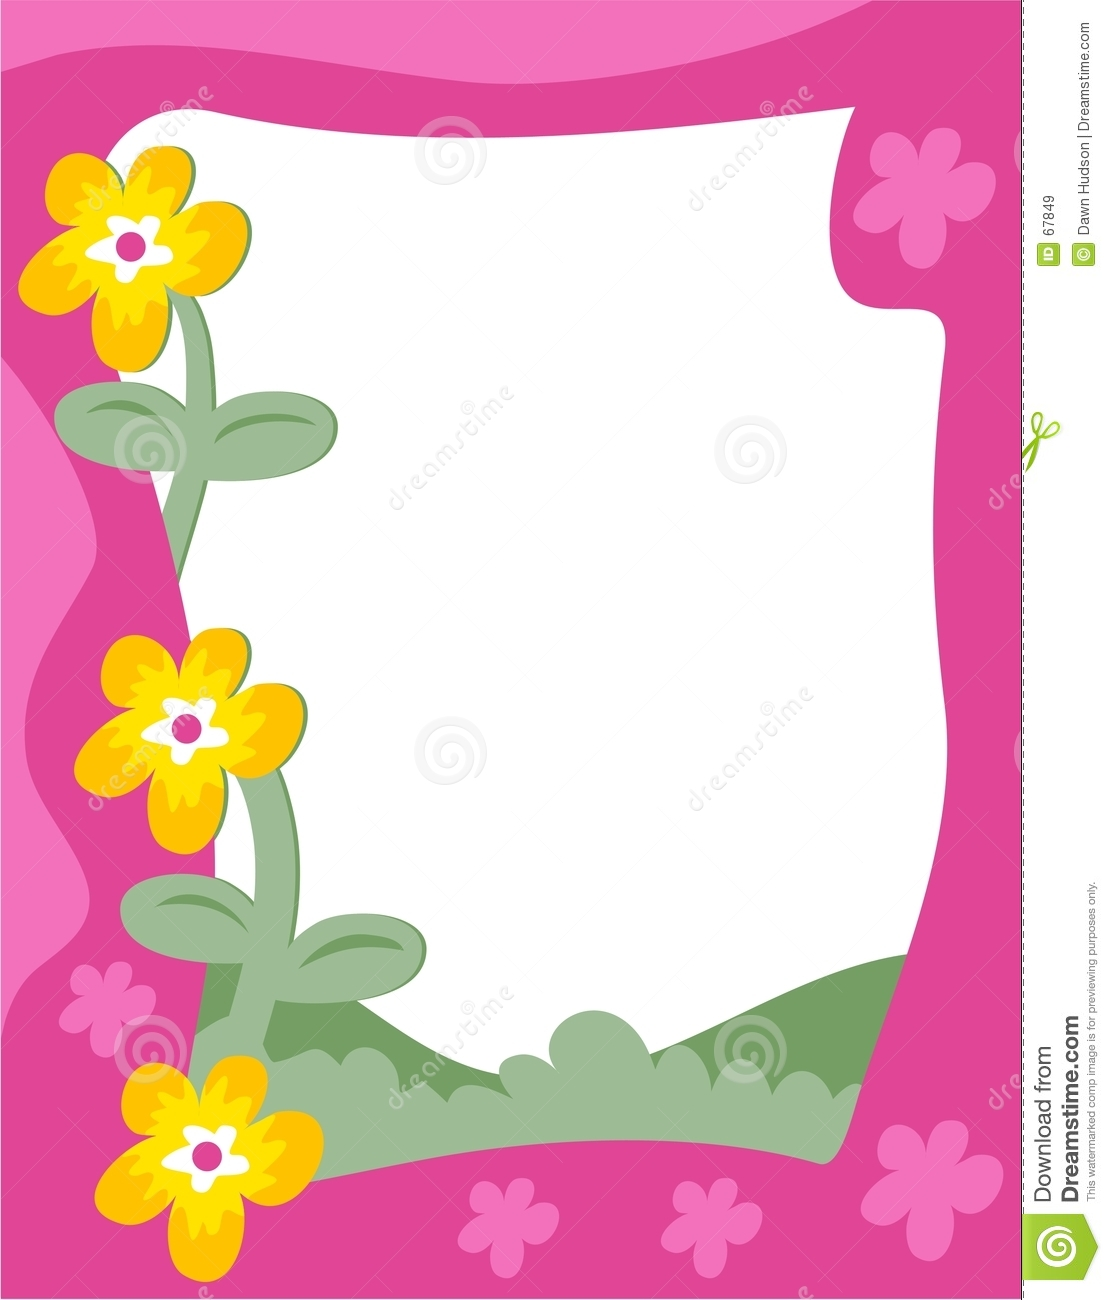 Clip art floral borders png library Flower Border Clipart | Clipart Panda - Free Clipart Images png library